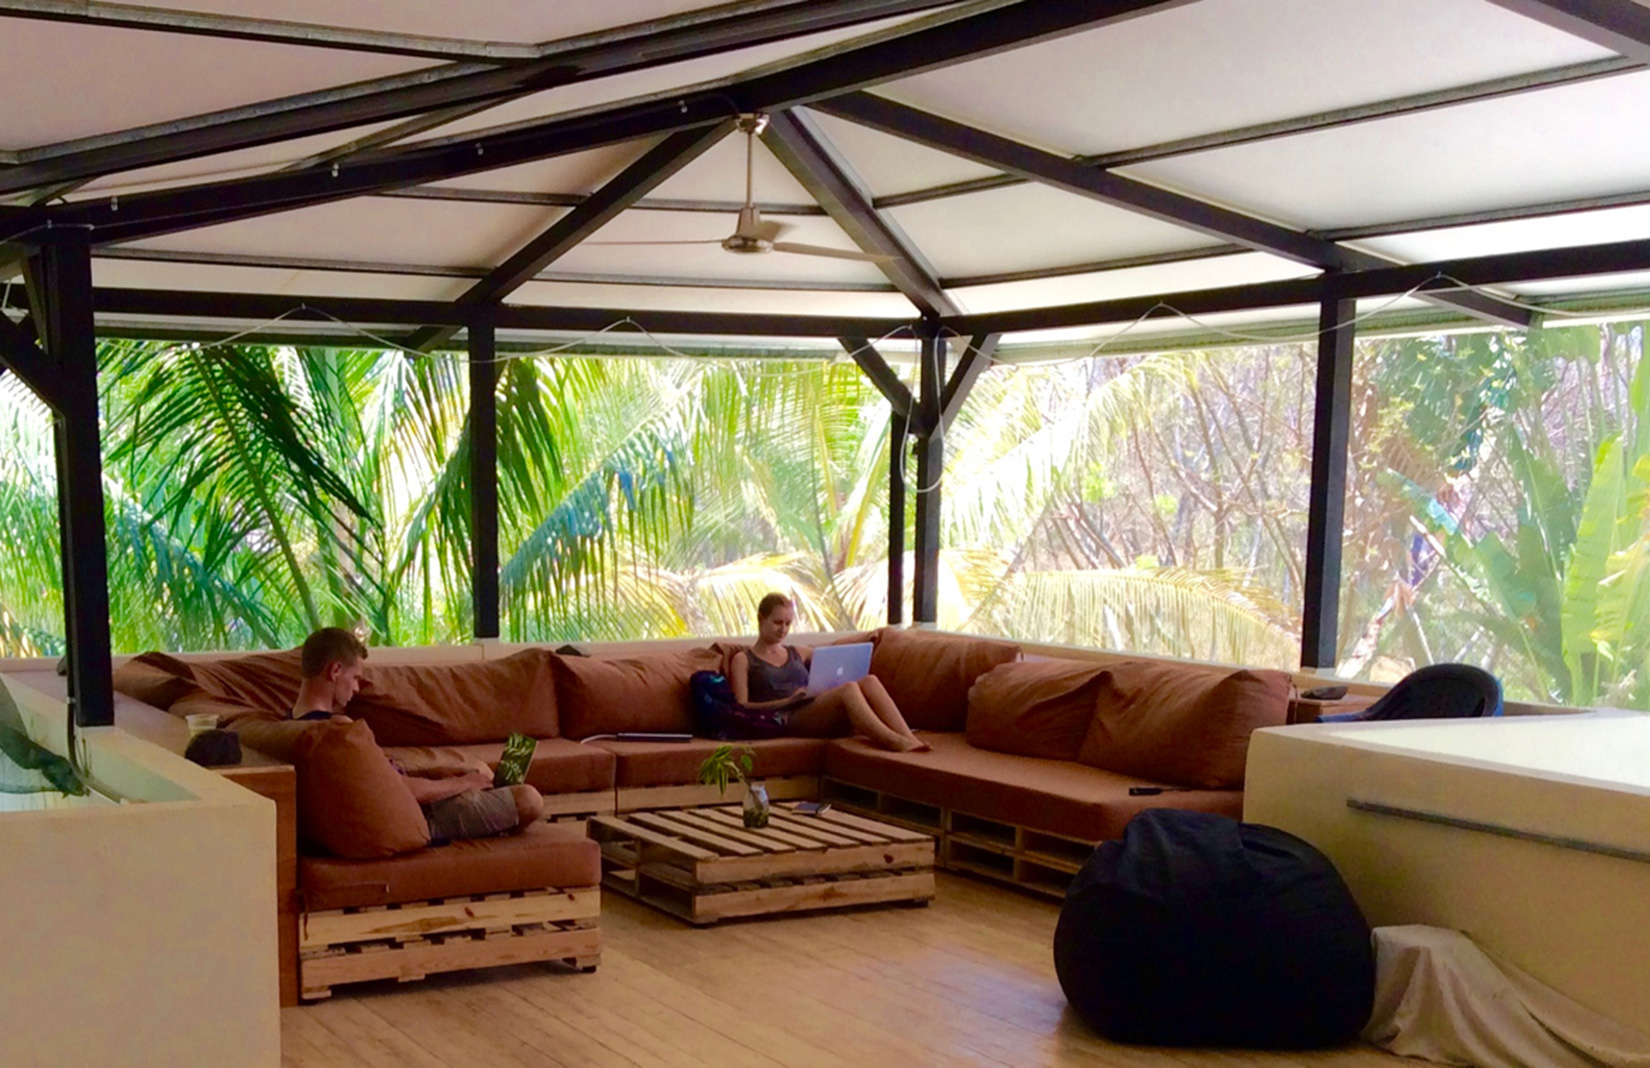 Coworking spaces in far flung places - including skyloft in Costa Rica